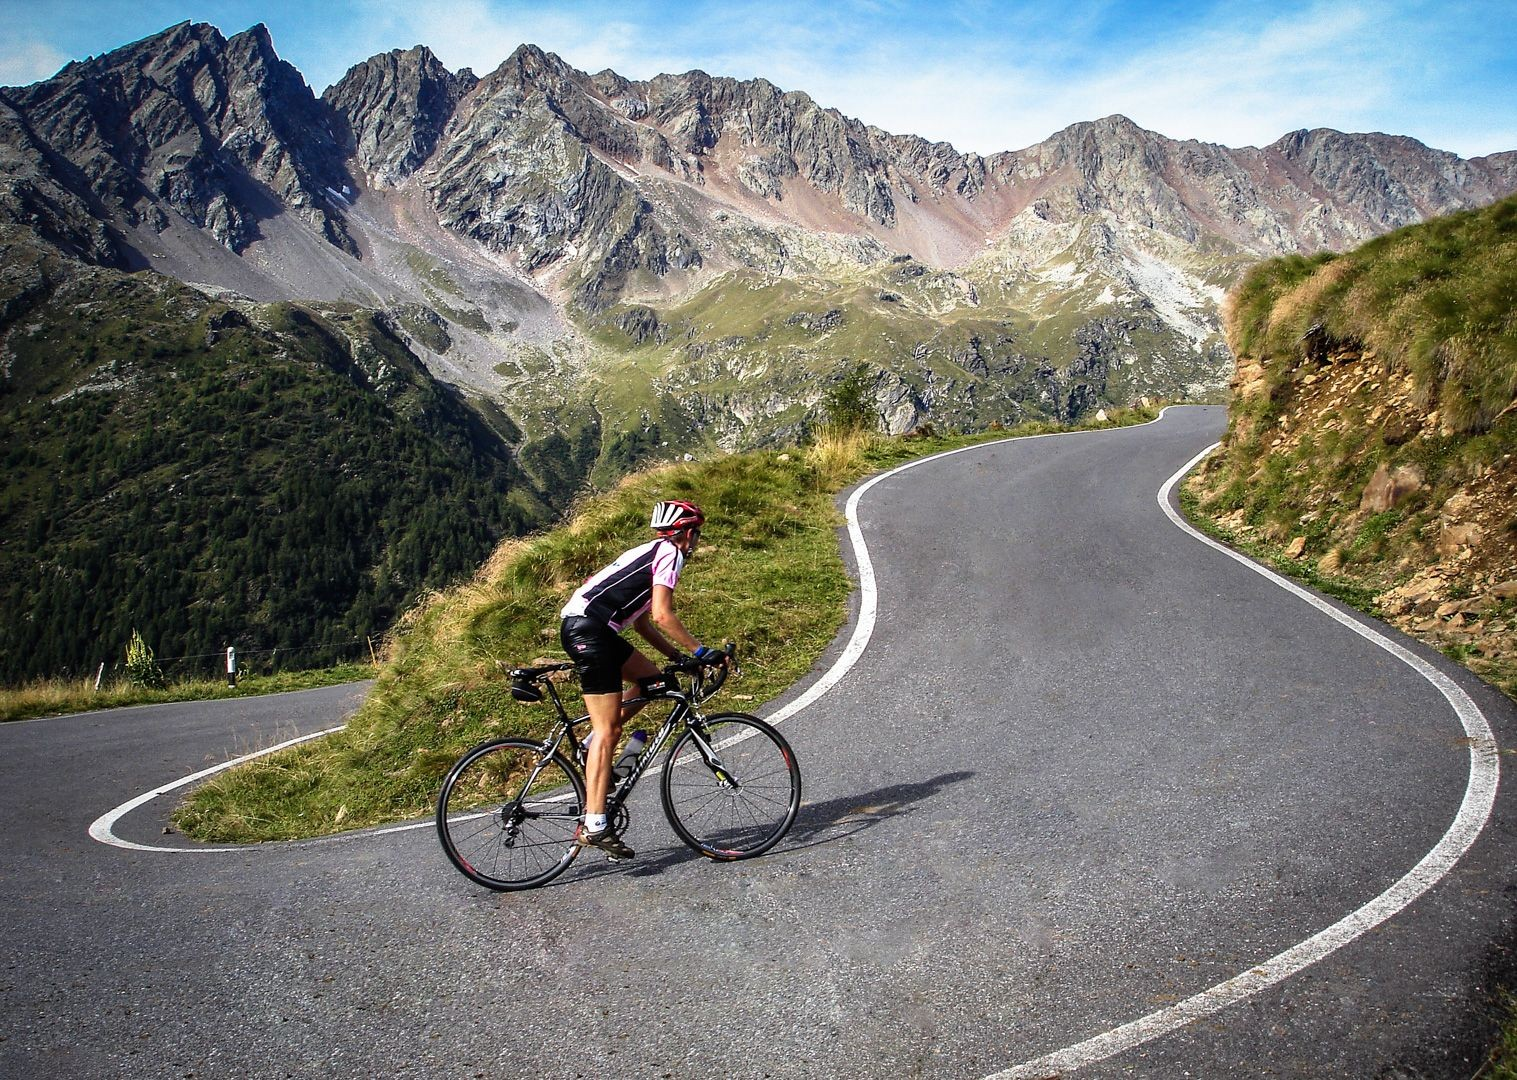 stevilo-pass-italy-road-cycling-guided-tour.jpg - Italy - Raid Dolomiti - Guided Road Cycling Holiday - Road Cycling